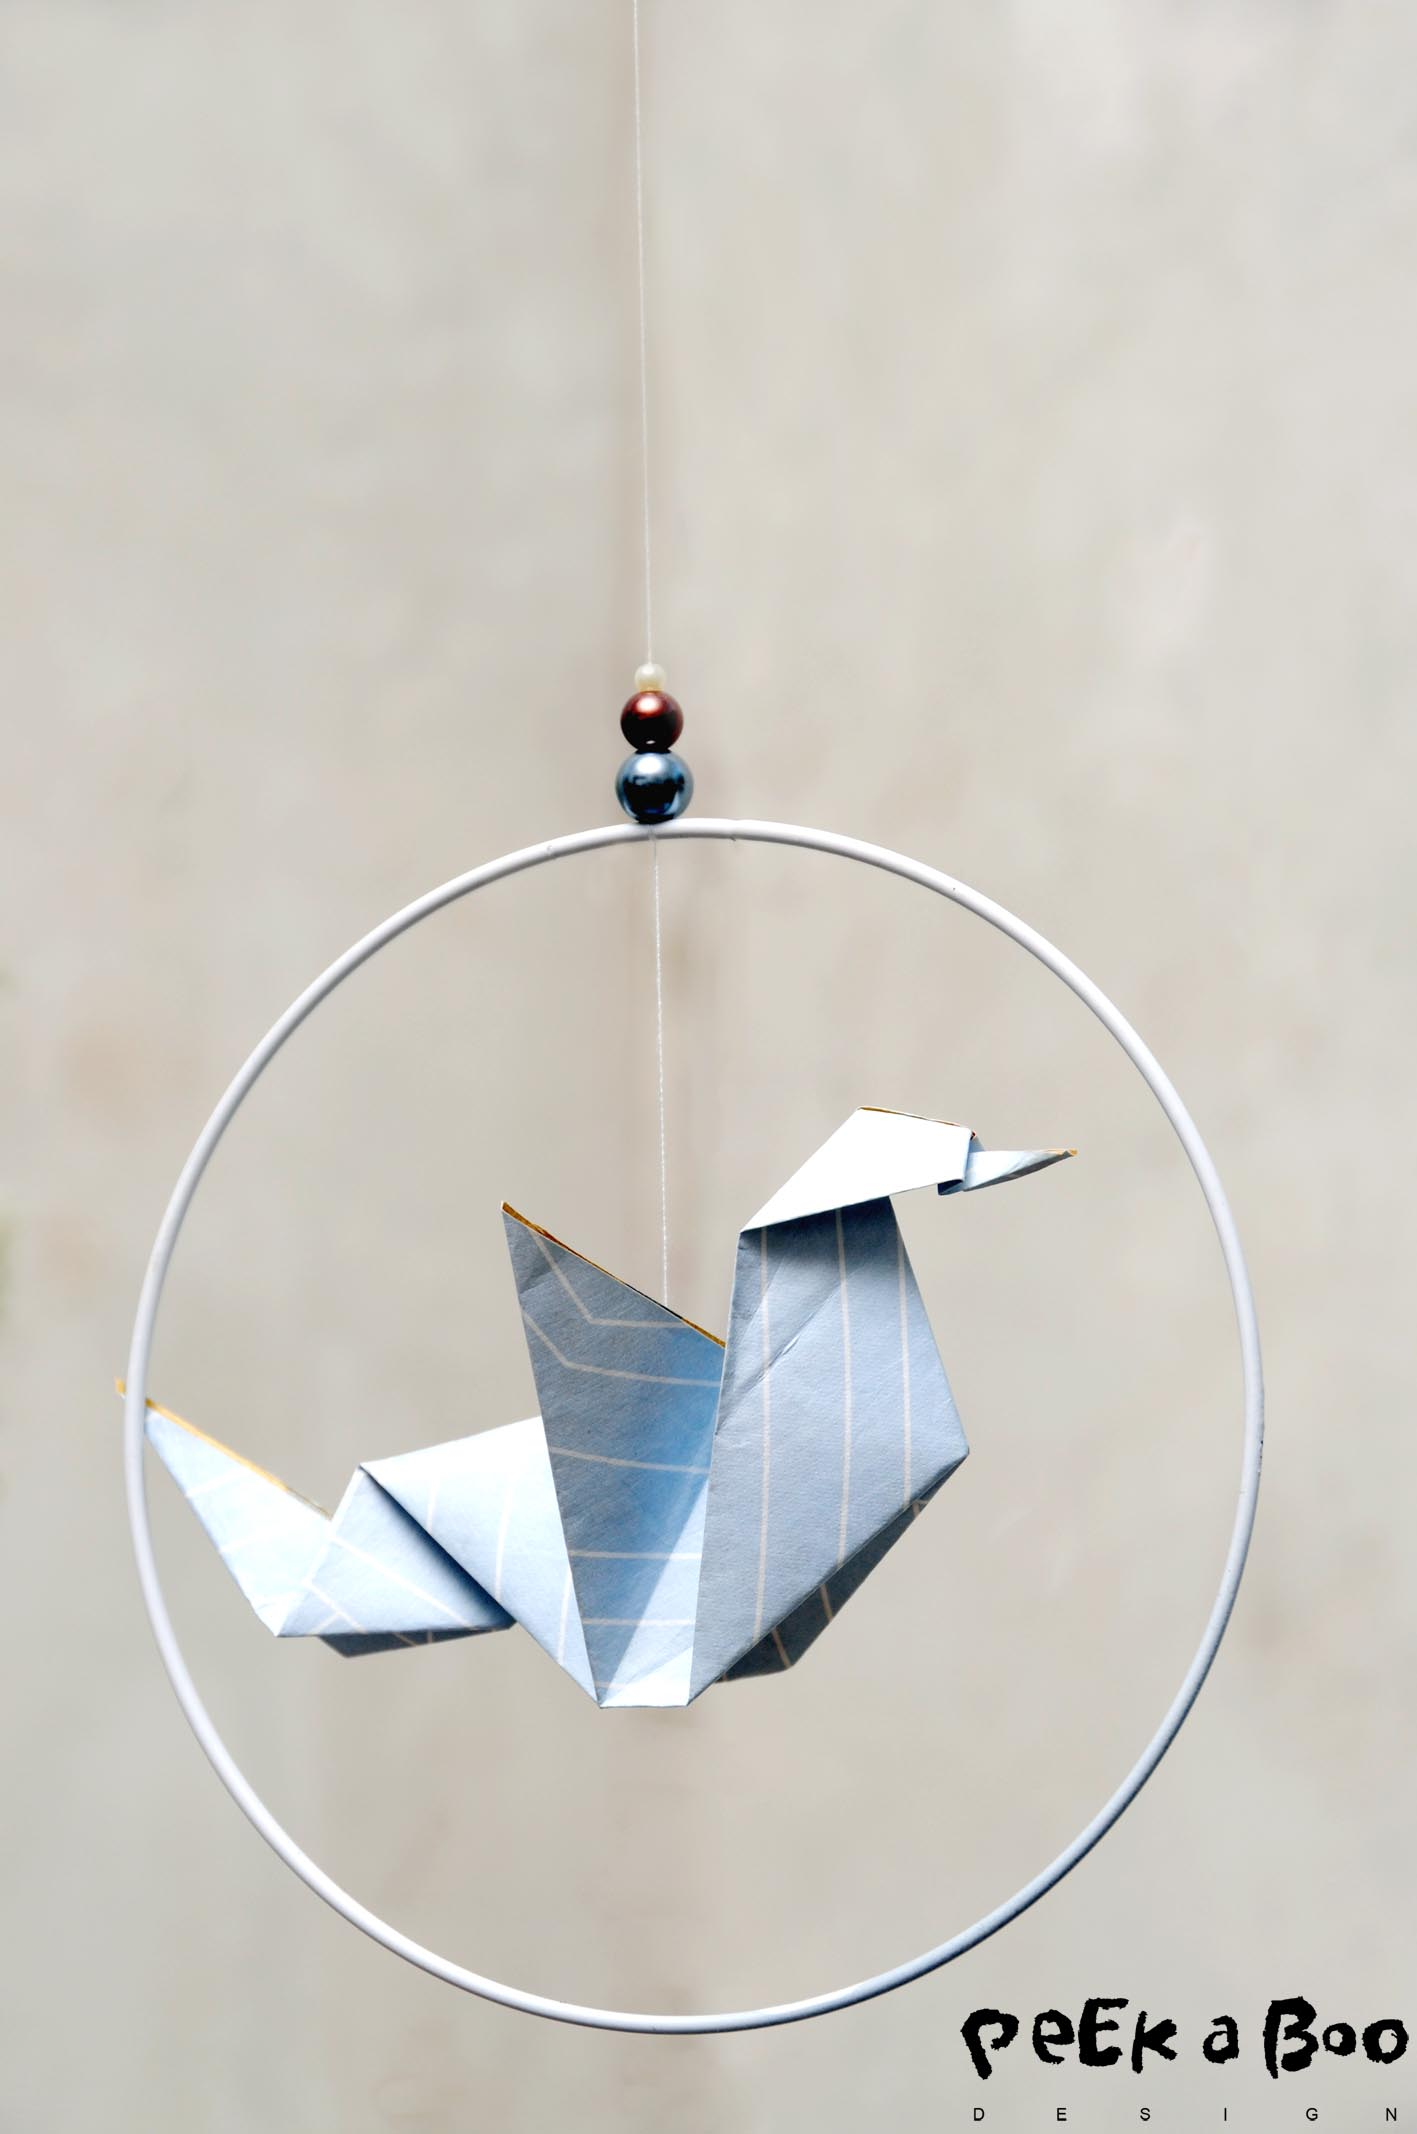 Origami bird in ring.